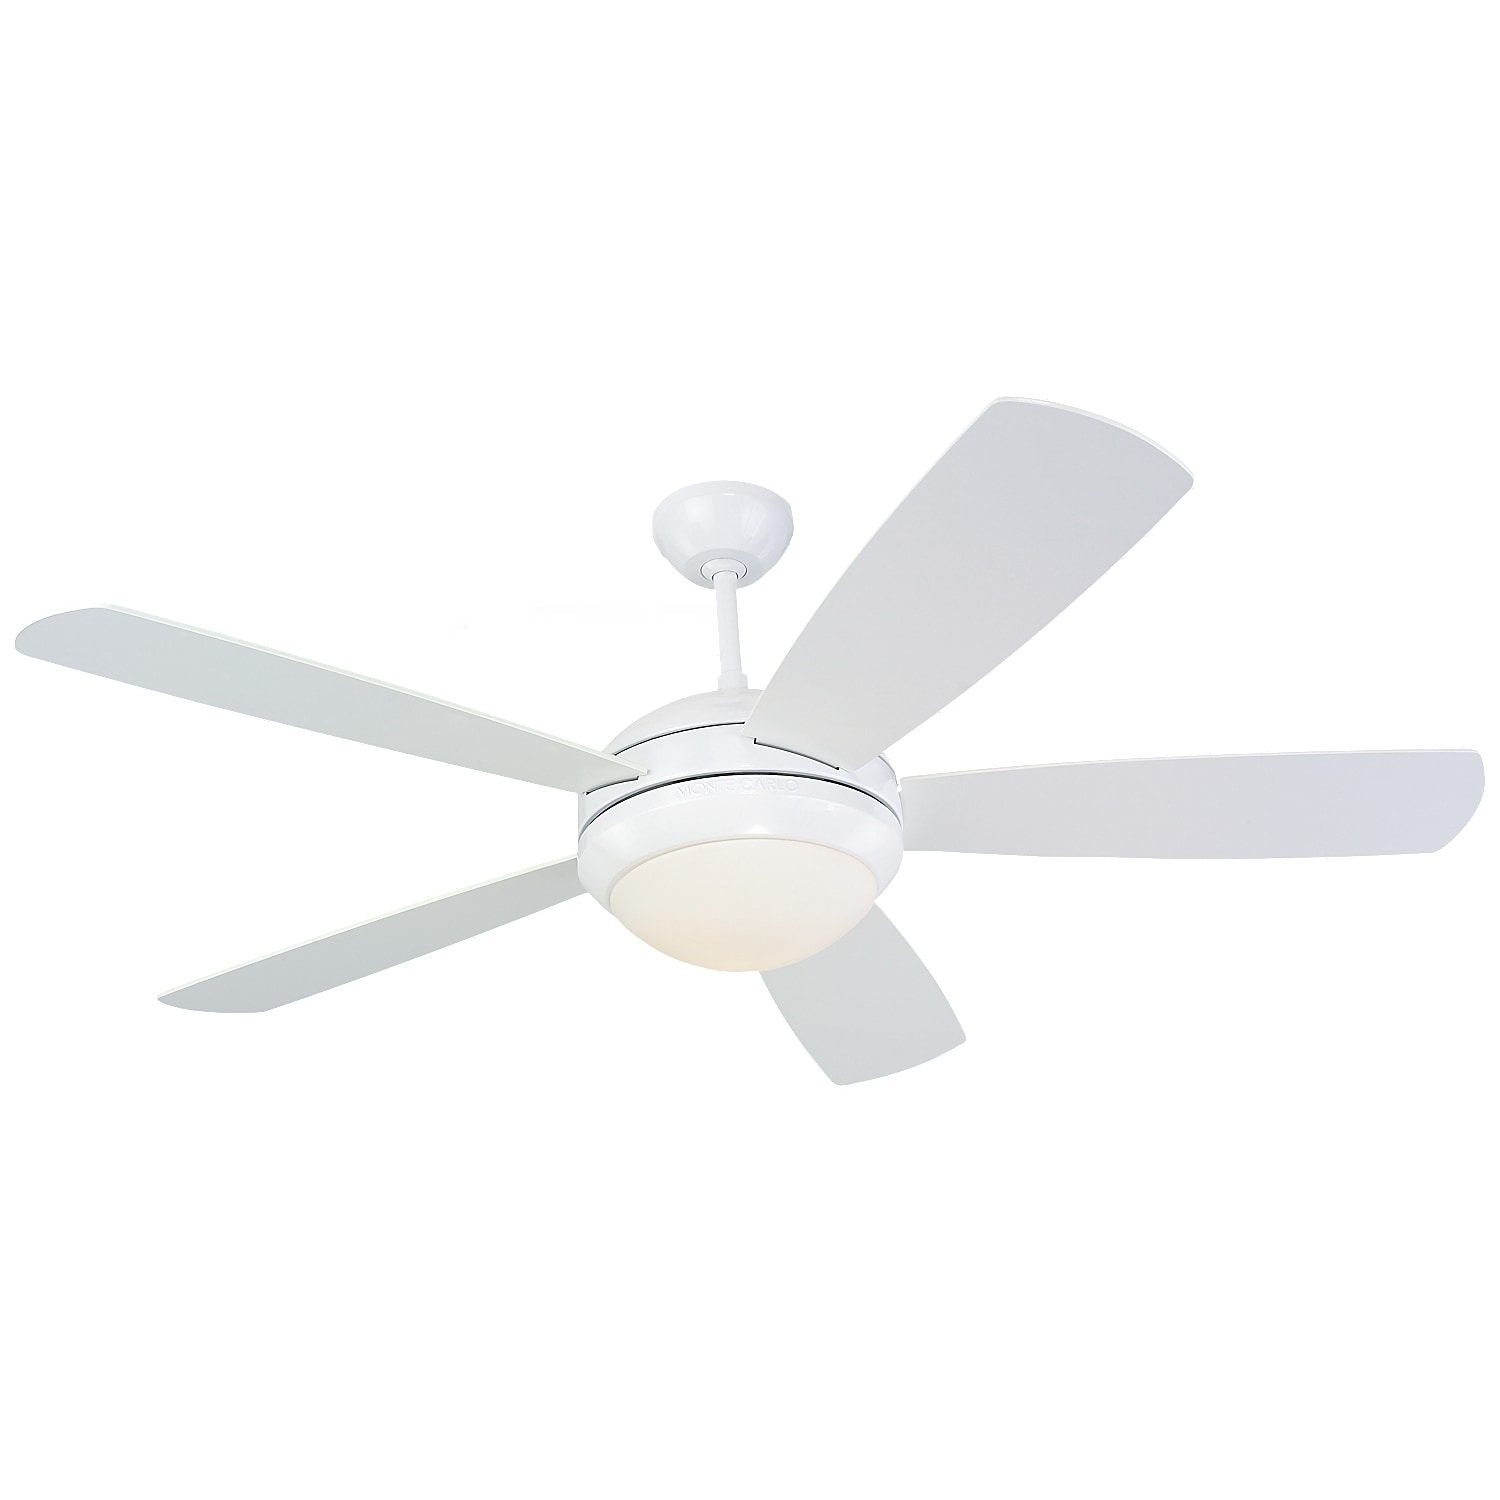 Monte carlo discus white 52 inch ceiling fan free shipping today monte carlo discus white 52 inch ceiling fan free shipping today overstock 17170314 aloadofball Choice Image